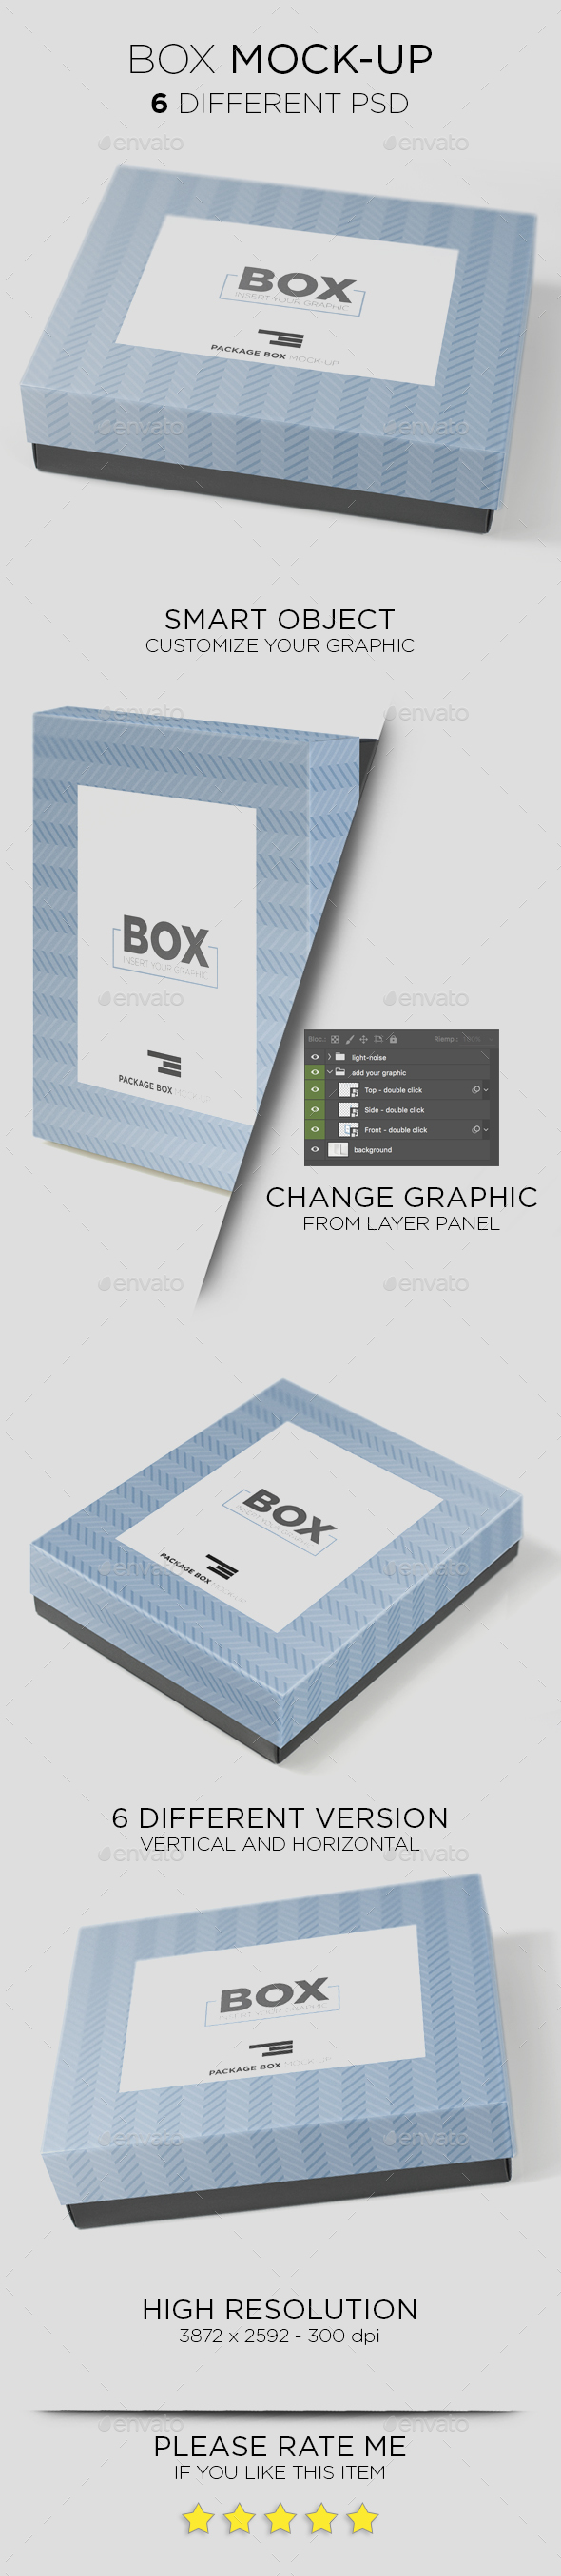 Package Box Mockup - Packaging Product Mock-Ups